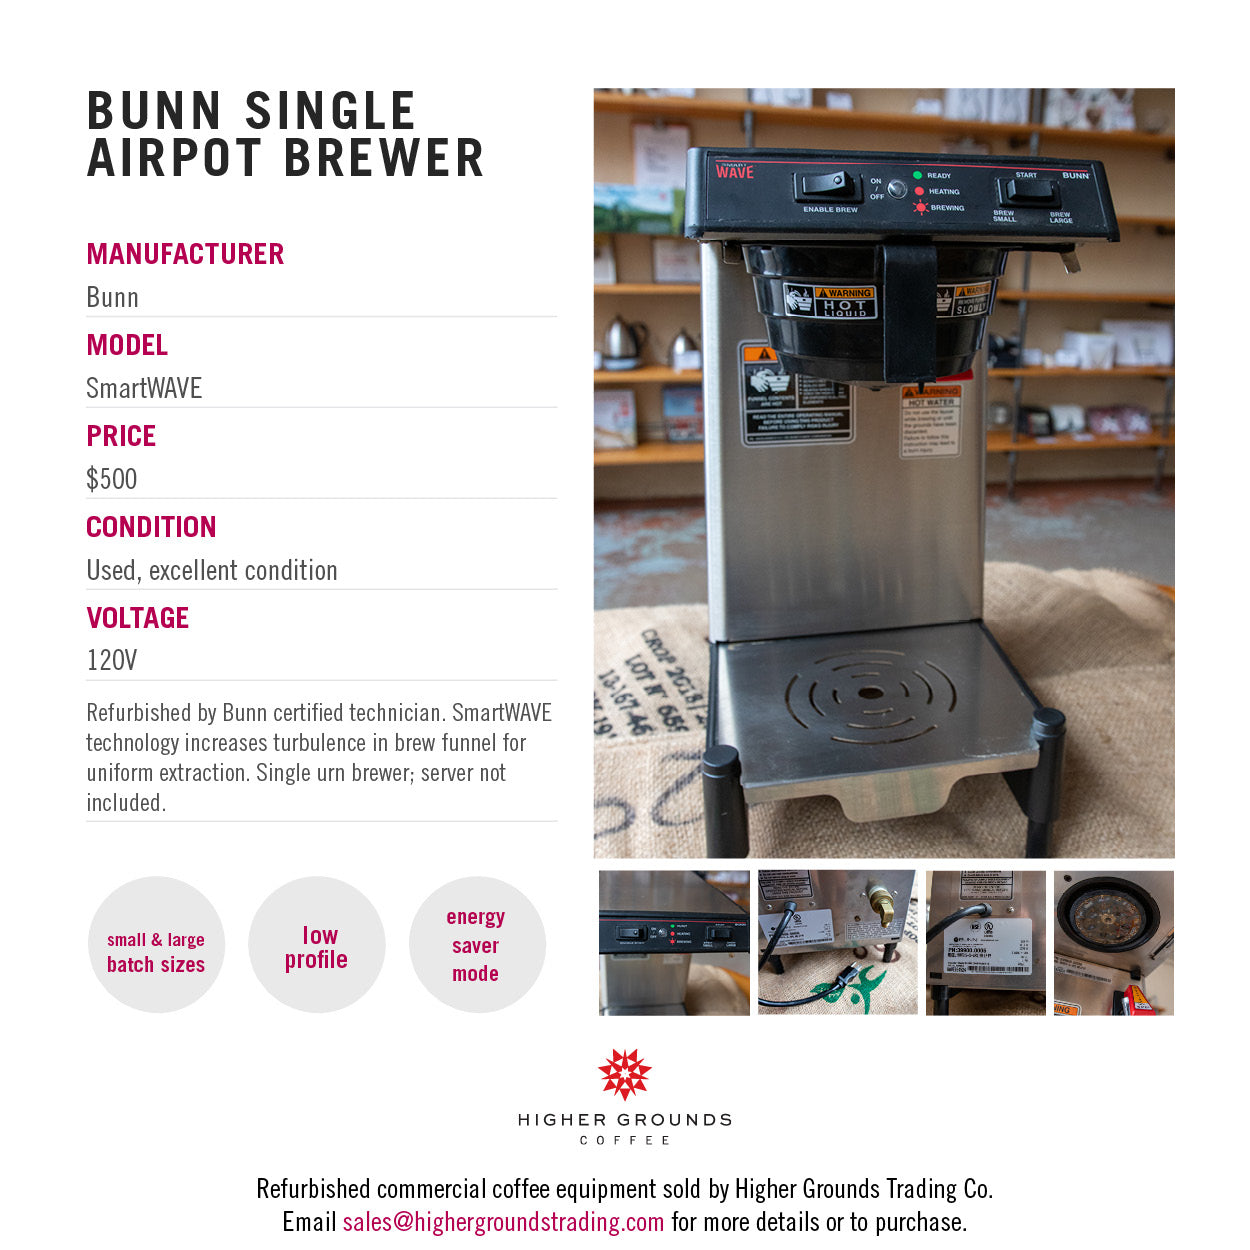 Bunn SmartWAVE brewer for sale from Higher Grounds Coffee